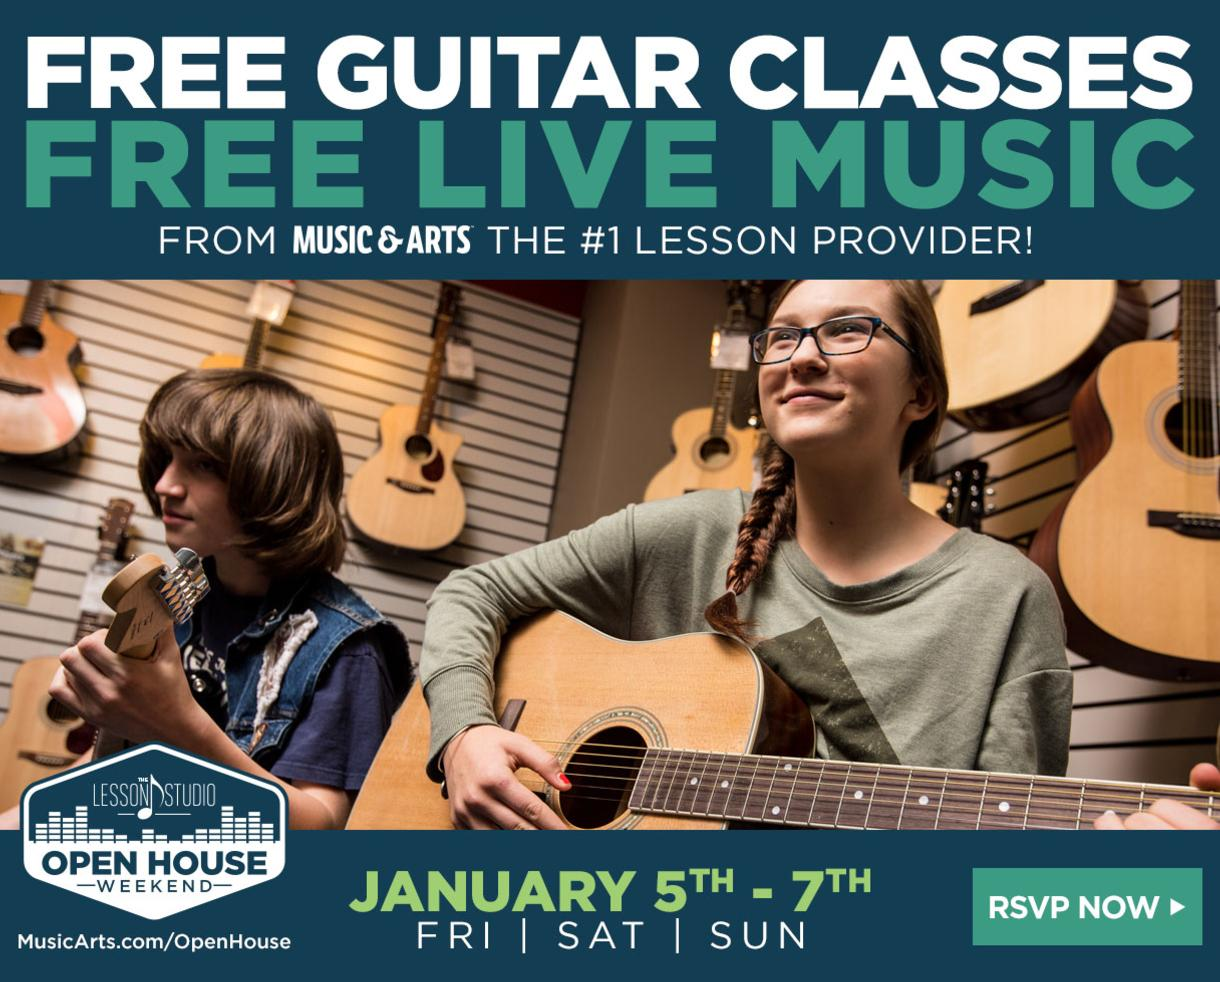 FREE GUITAR CLASSES and FREE LIVE MUSIC at Music & Arts Jan. 5-7, 2018 - The Nation's Largest Music Lesson Provider